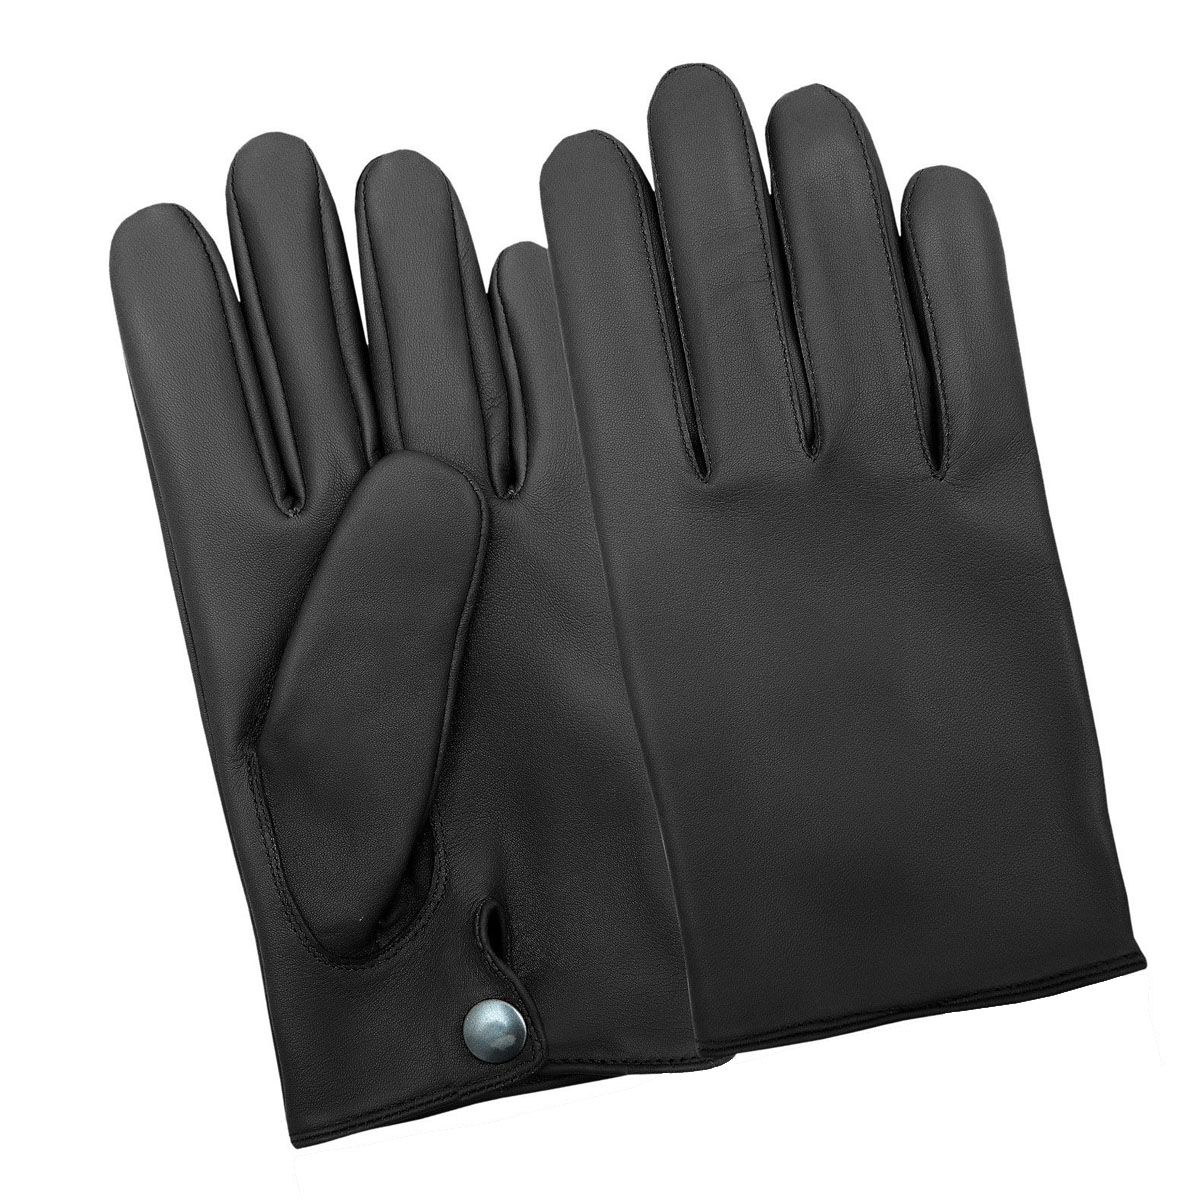 Dam Leather Weight Lifting Gym Gloves Real Leather Women S: LEATHER DRIVING SKIN FIT GOLVES BIKER CHAUFFEUR SOFT